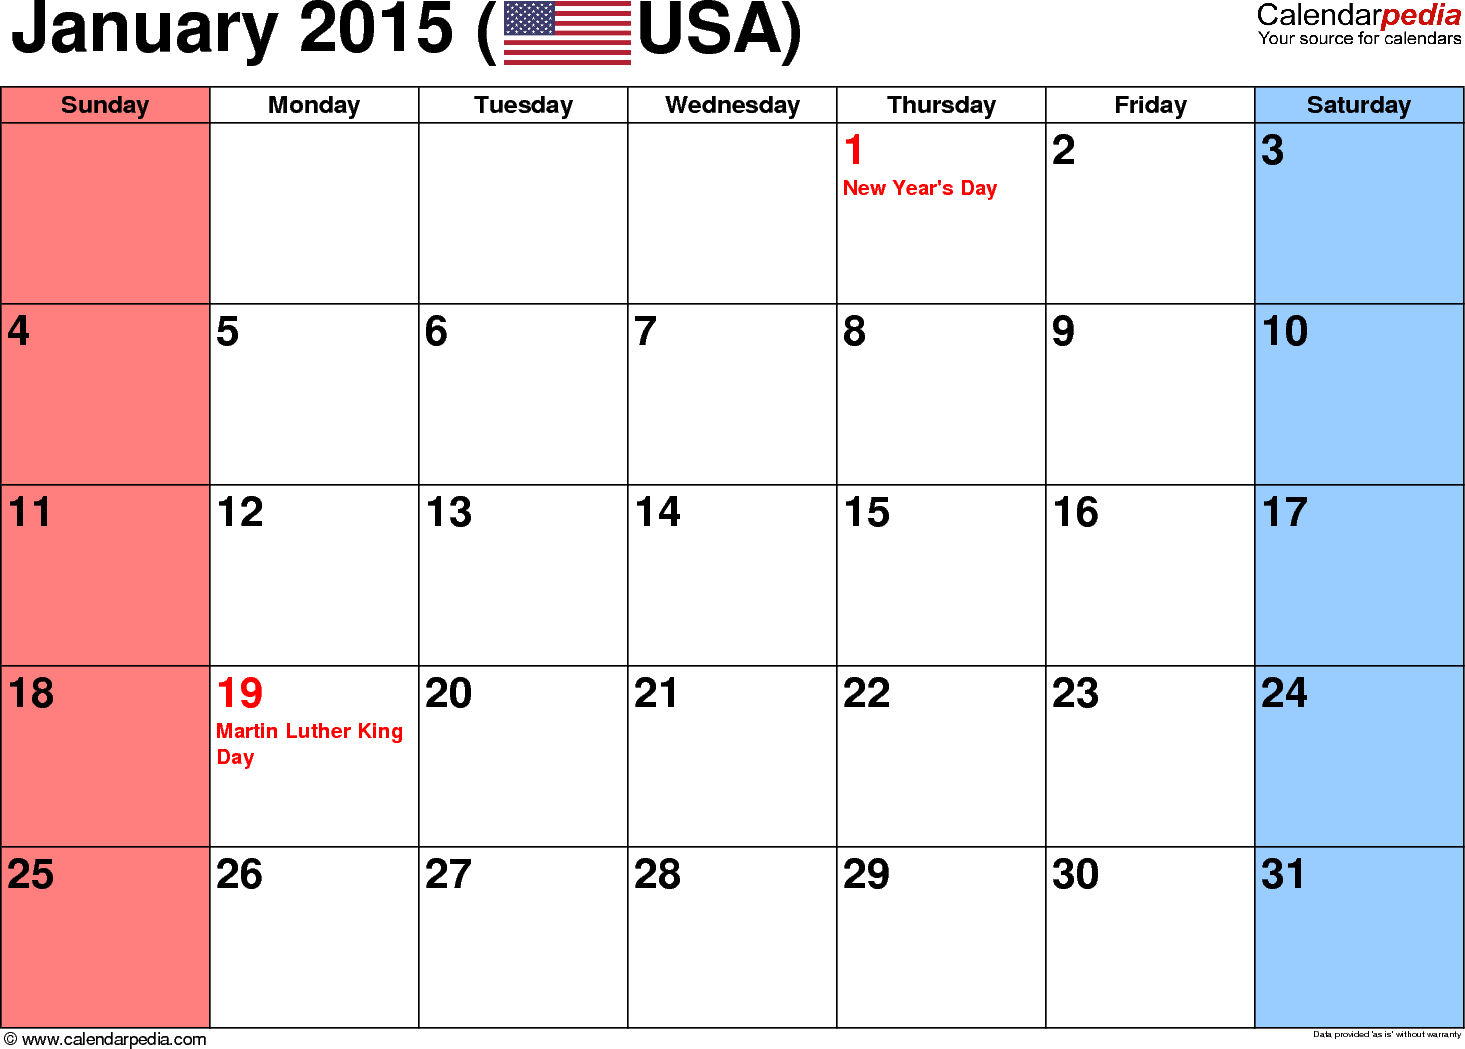 January 2015 Calendar Free Templates For Word Excel Pdf Printable Calendar Pages Printable Calendar Template Calendar Printables